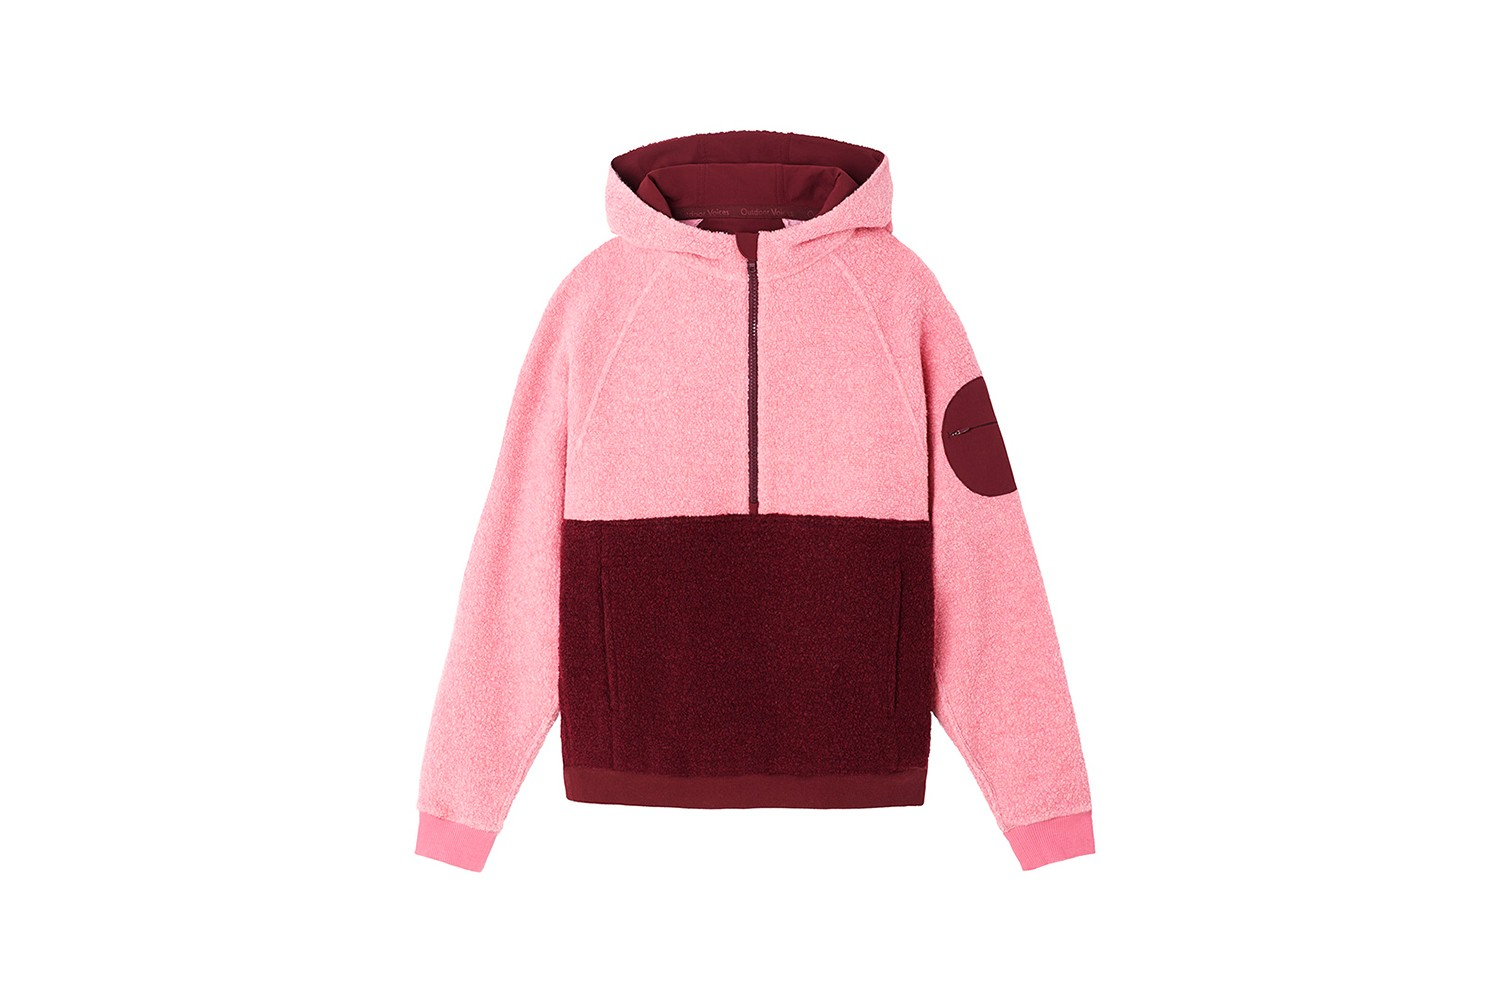 outdoor voices fleece fall winter collection jackets hoodies sweaters